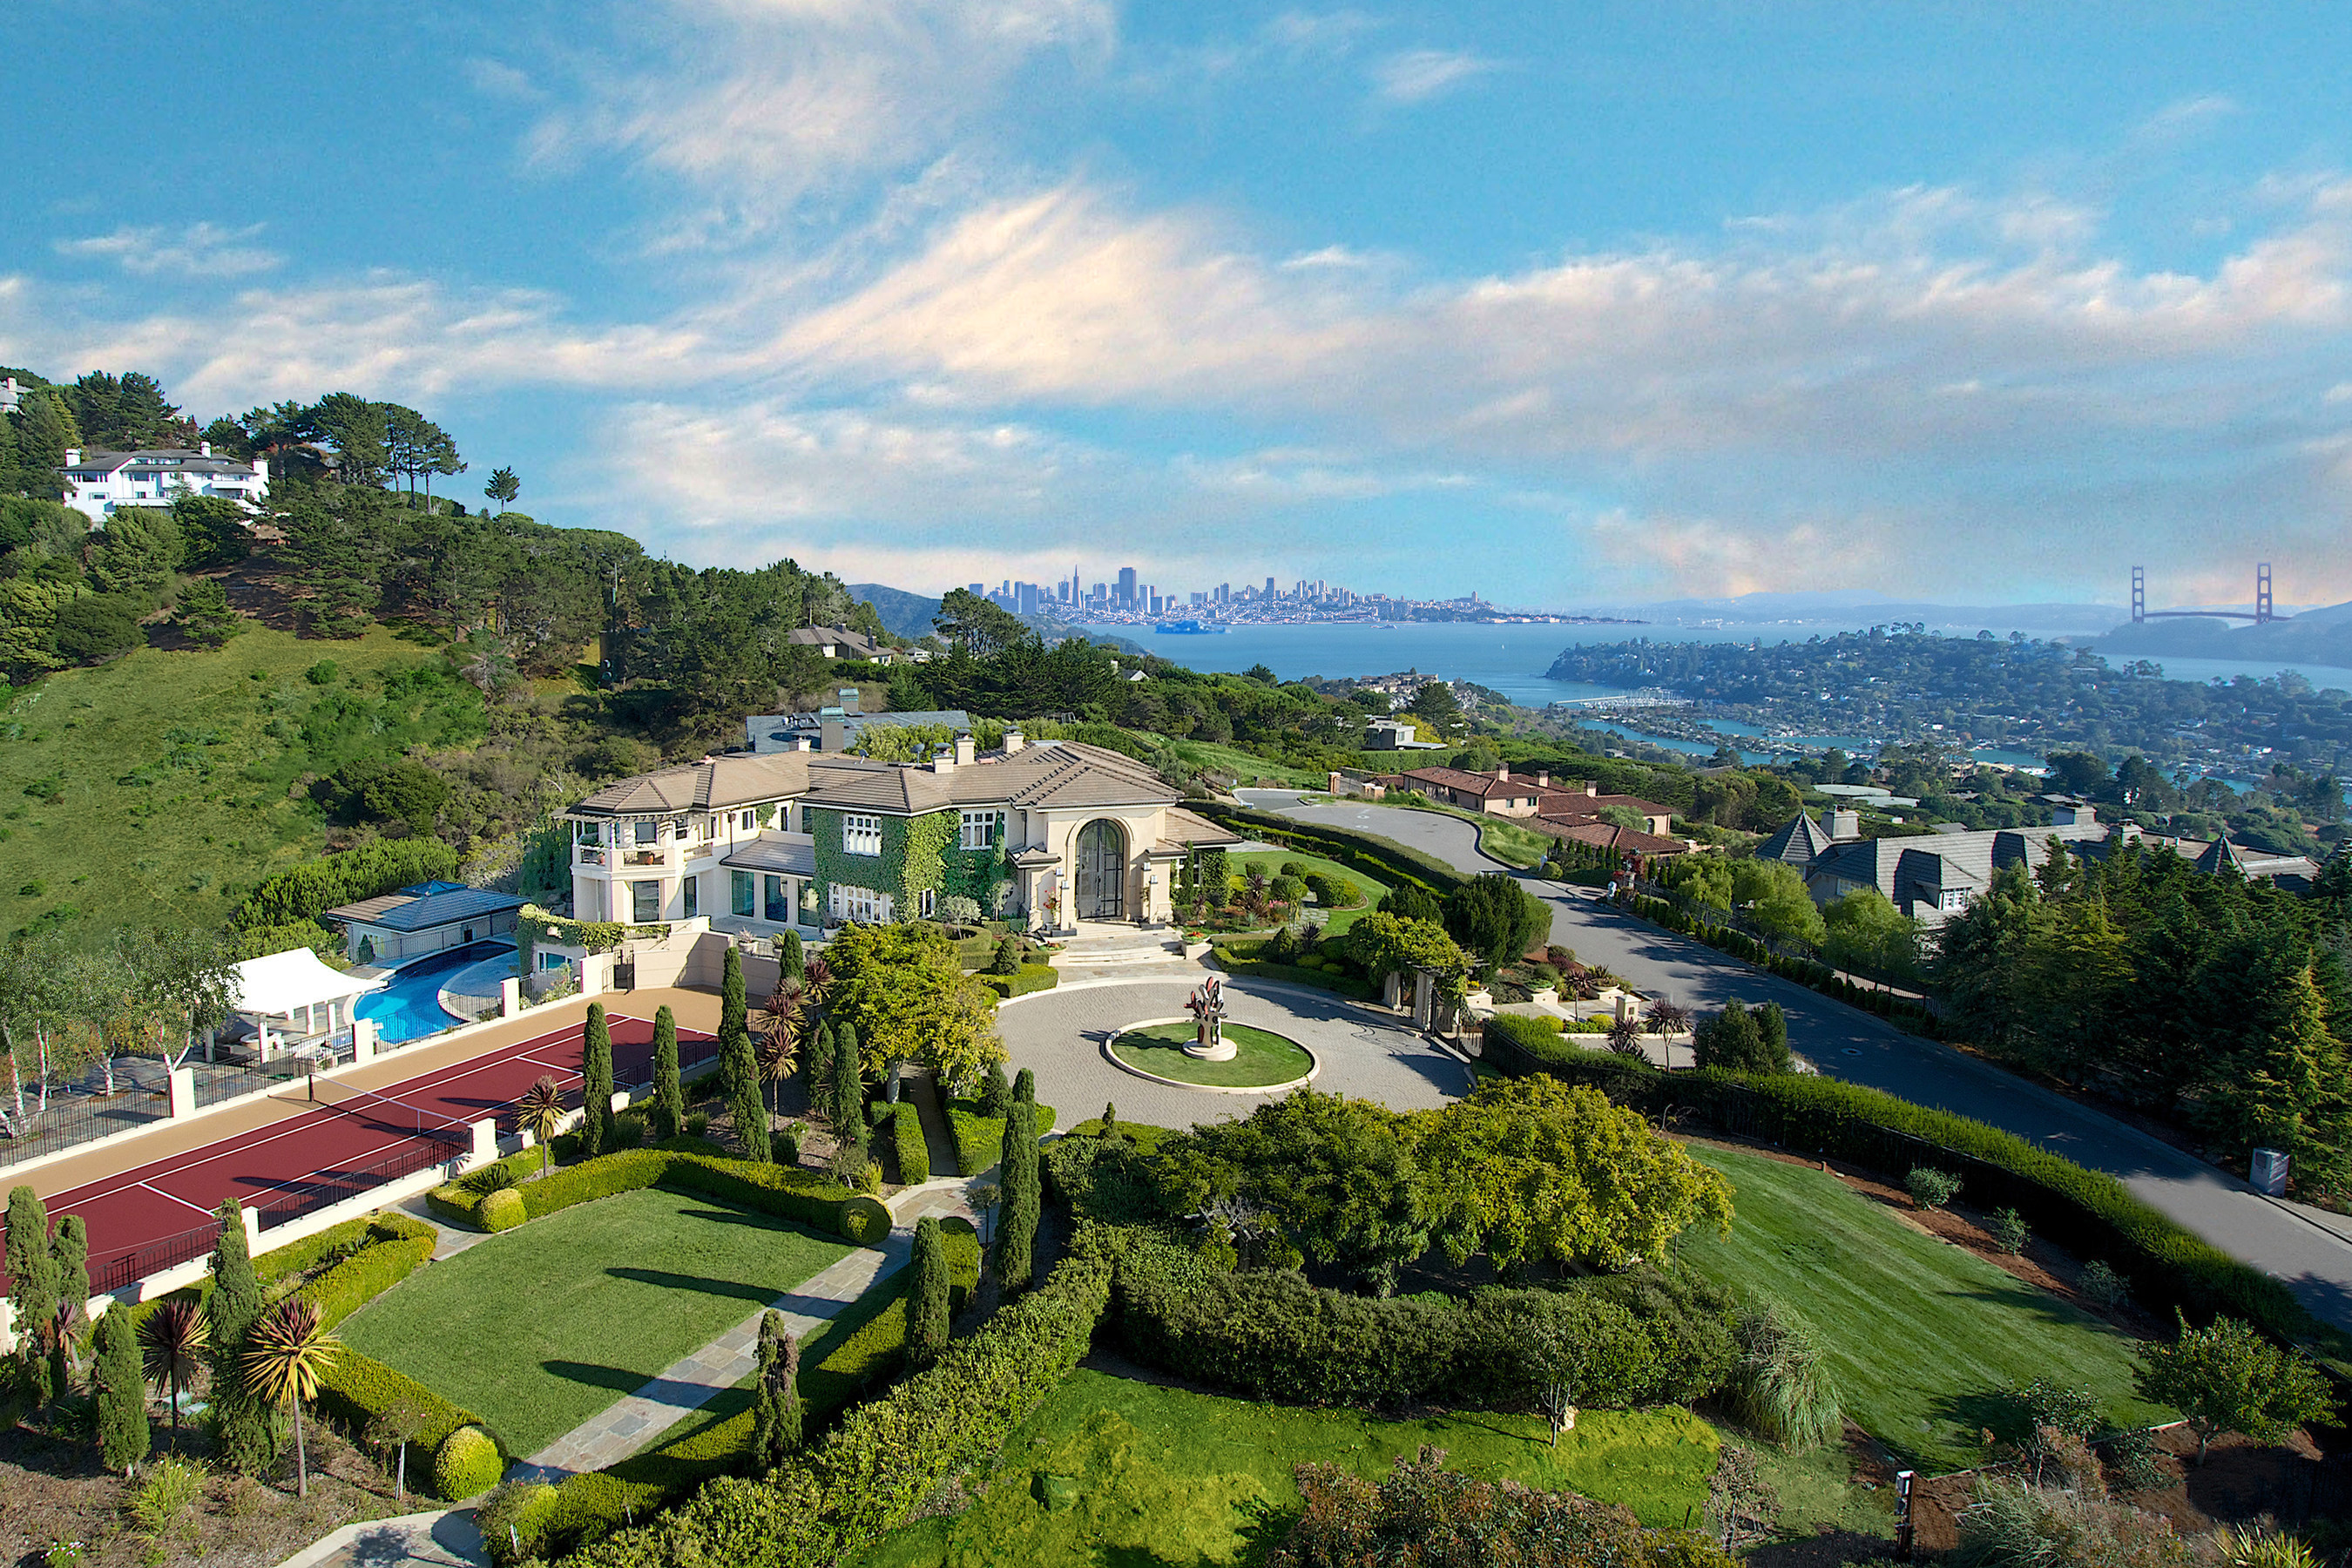 Bill Bullock and Lydia Sarkissian Break Luxury Home Sales Record in Marin